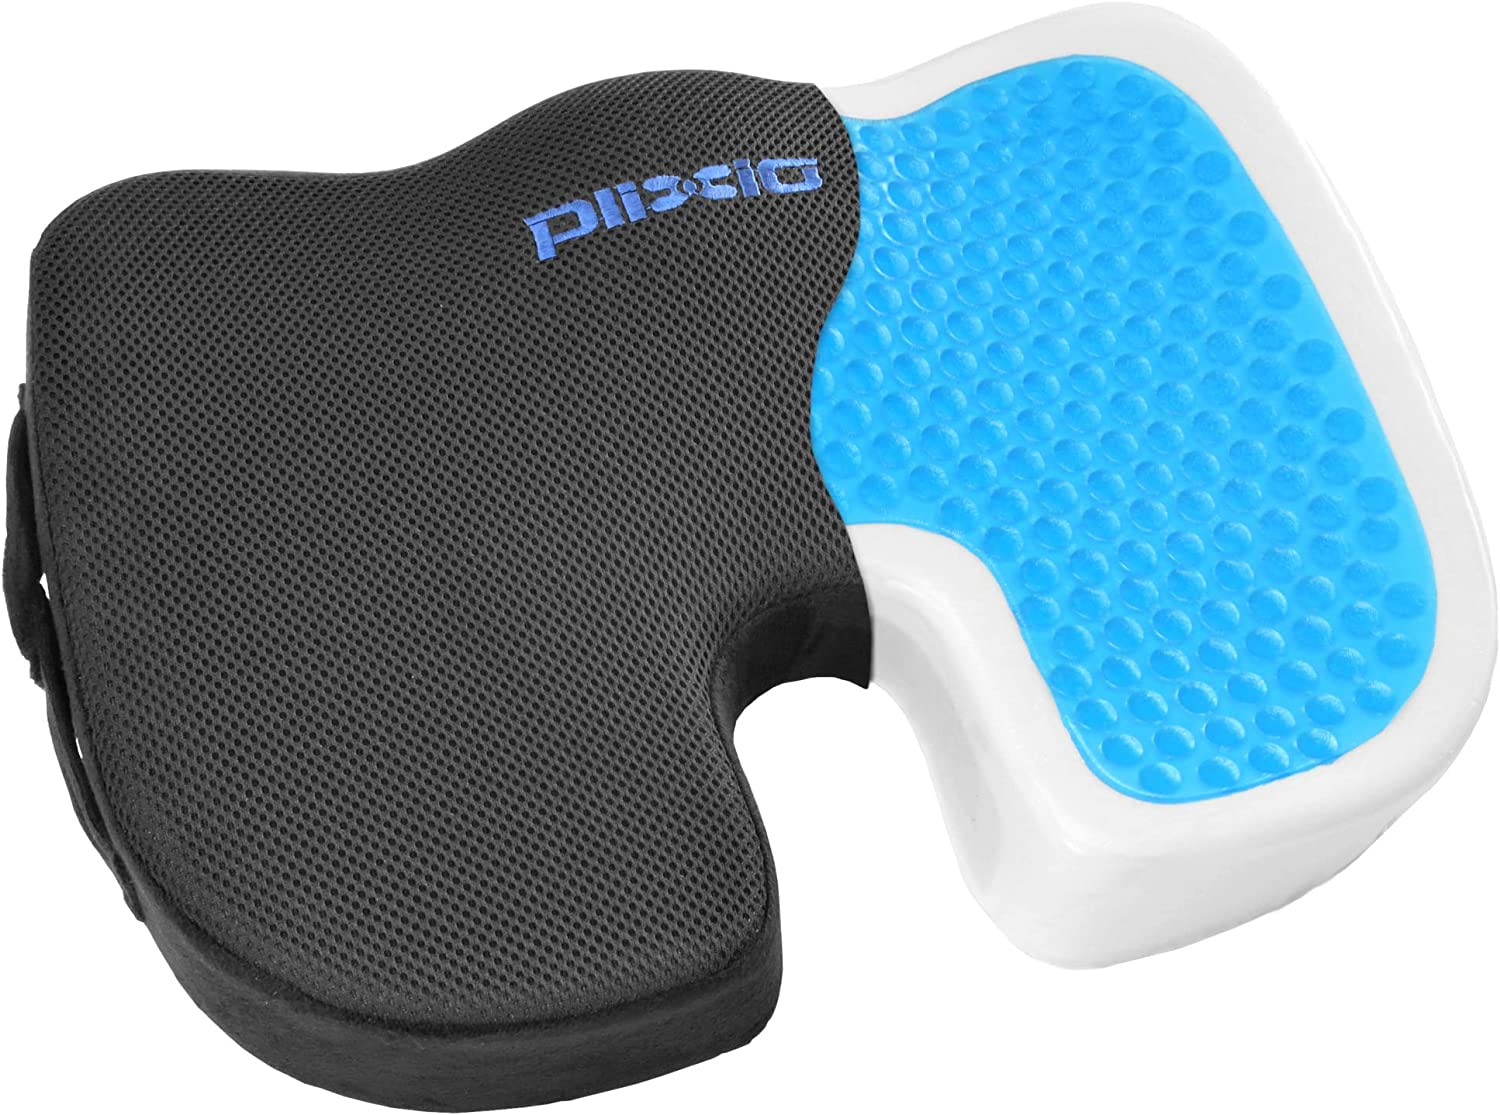 Plixio Gel Max 87% OFF Seat Cushion Memory Seattle Mall Foam with Cooling Chair Pillow Ge